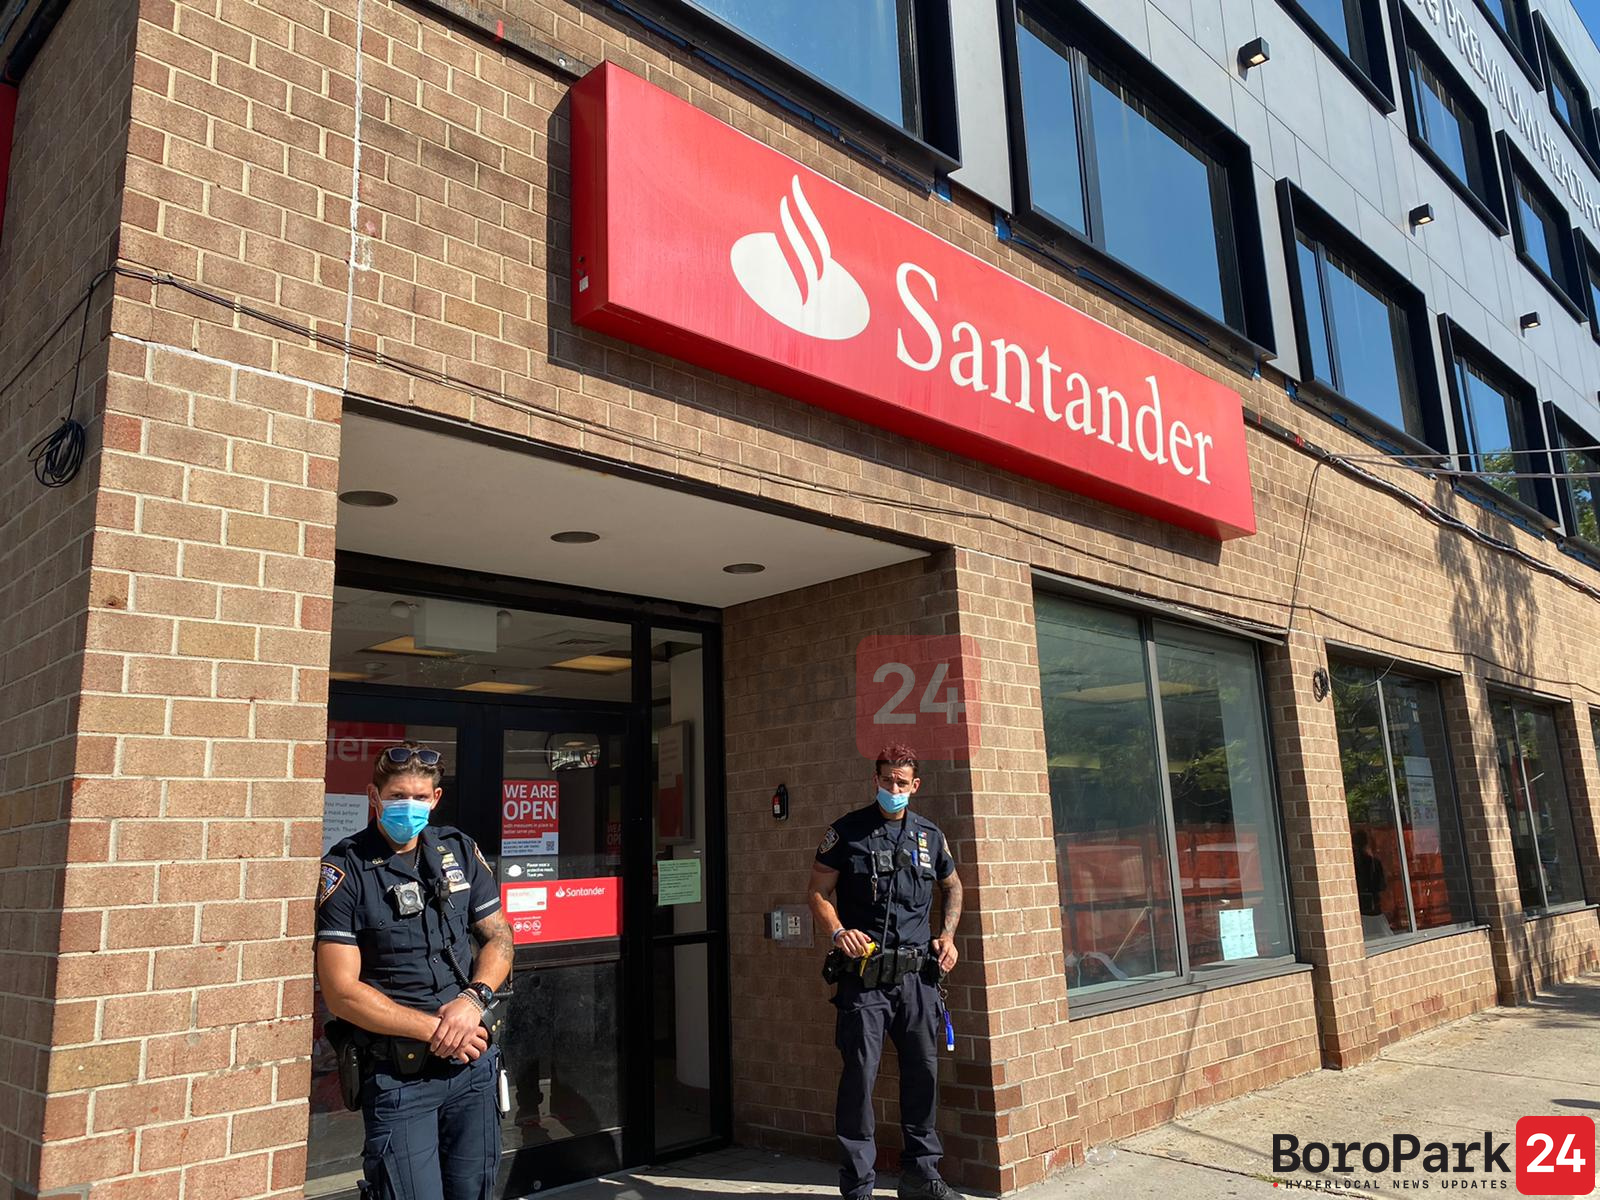 Thousands of Dollars Stolen from Santander Bank ATM, Police Allowed Suspects to Walk